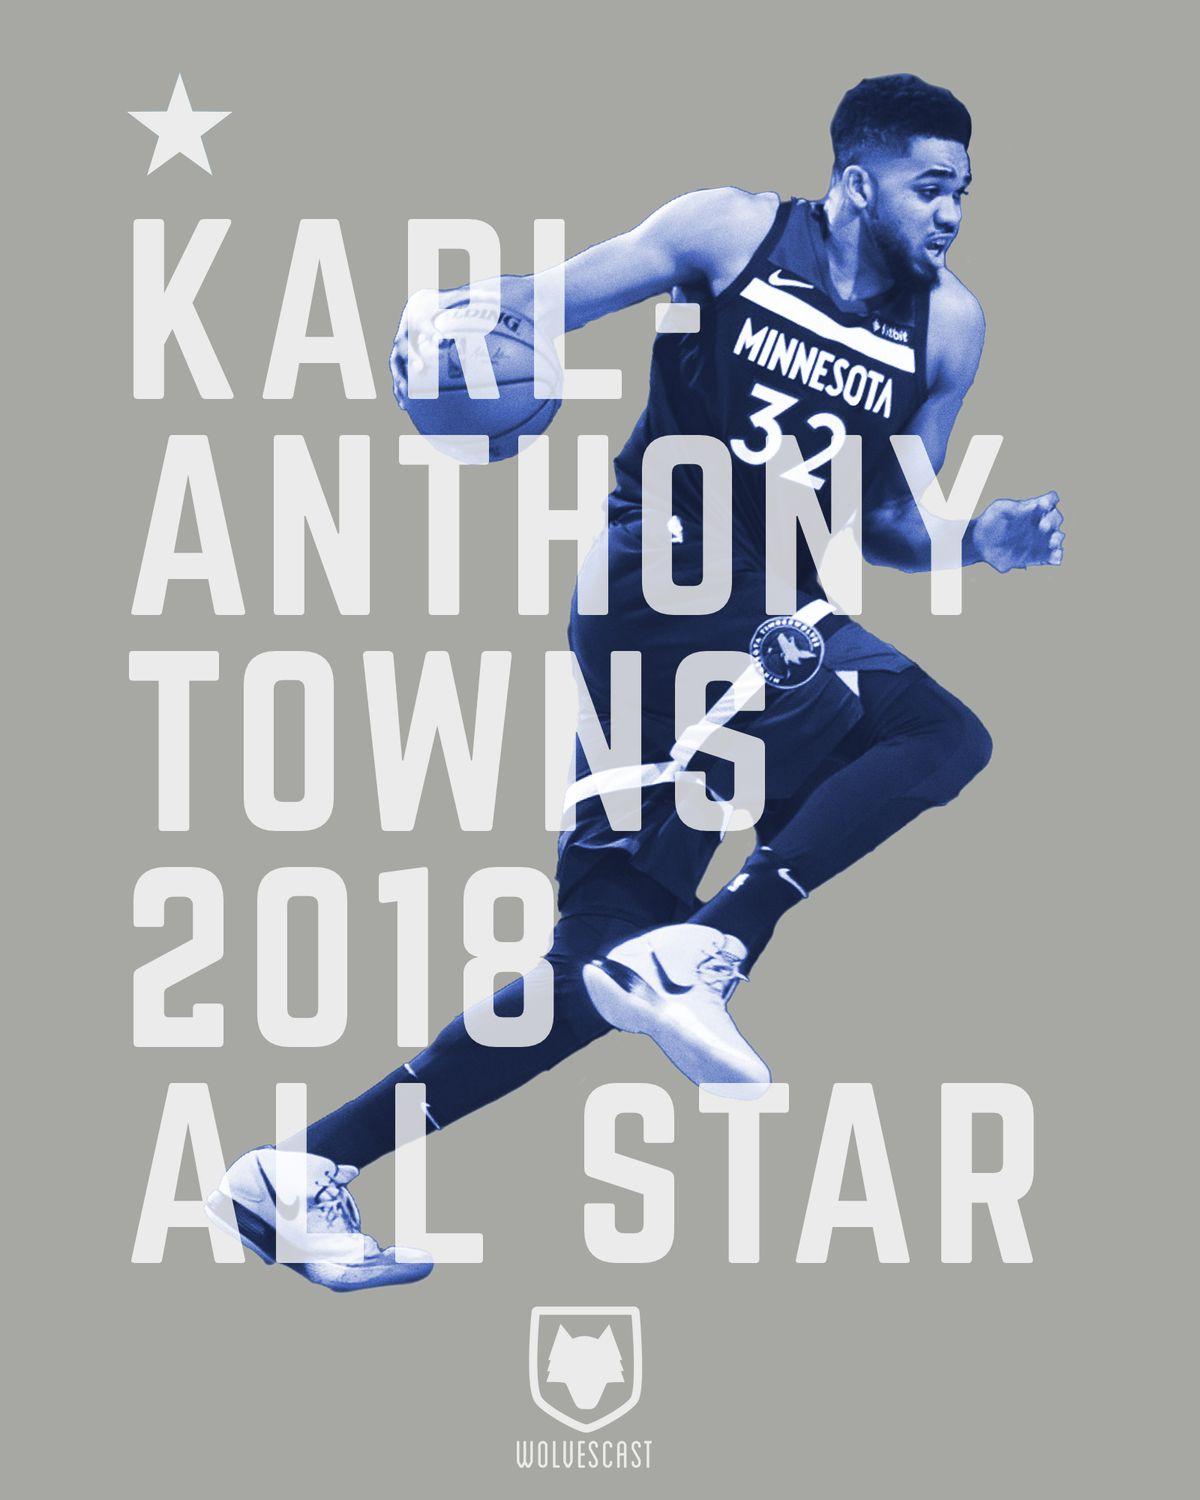 Karl-Anthony Towns 2018 All Star